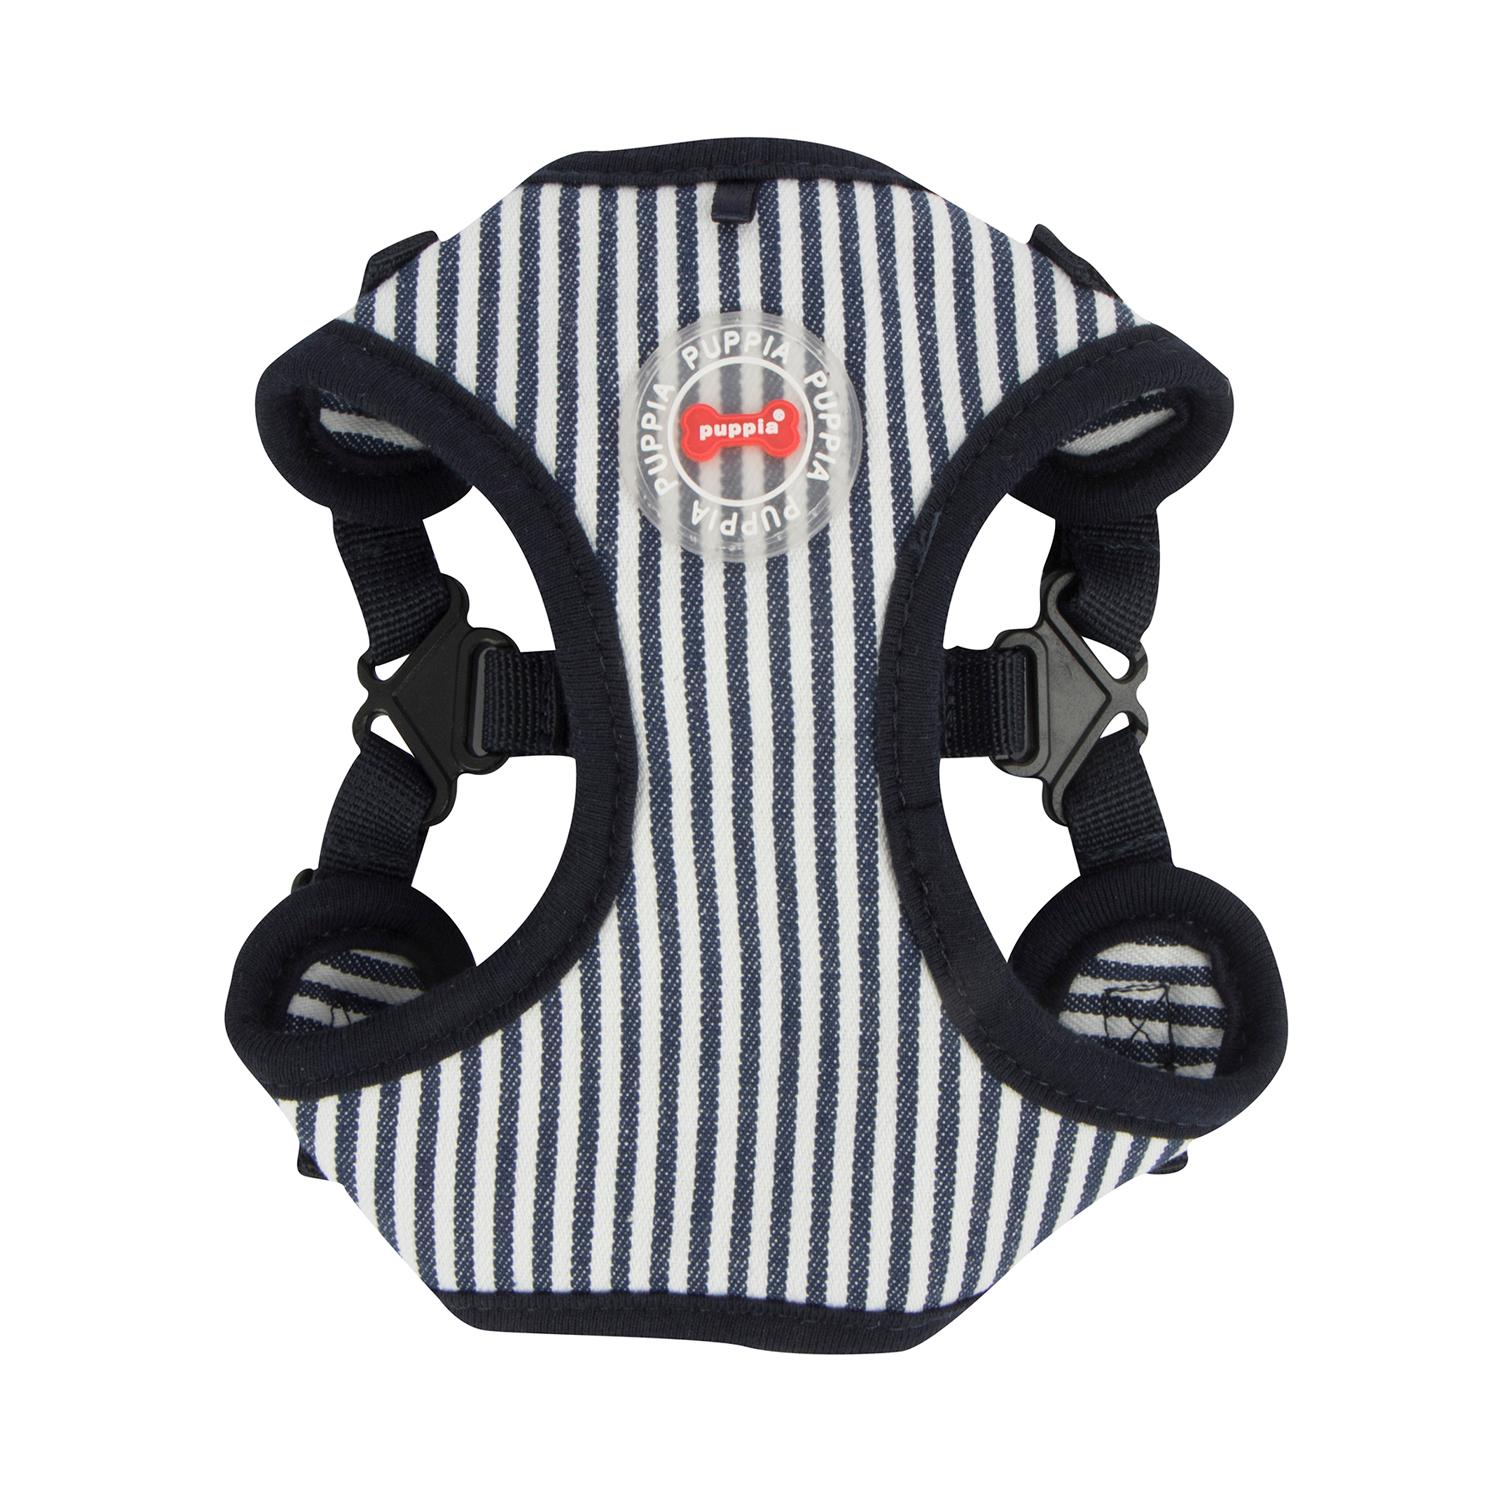 Bobby Adjustable Step-In Dog Harness by Puppia - Striped Navy